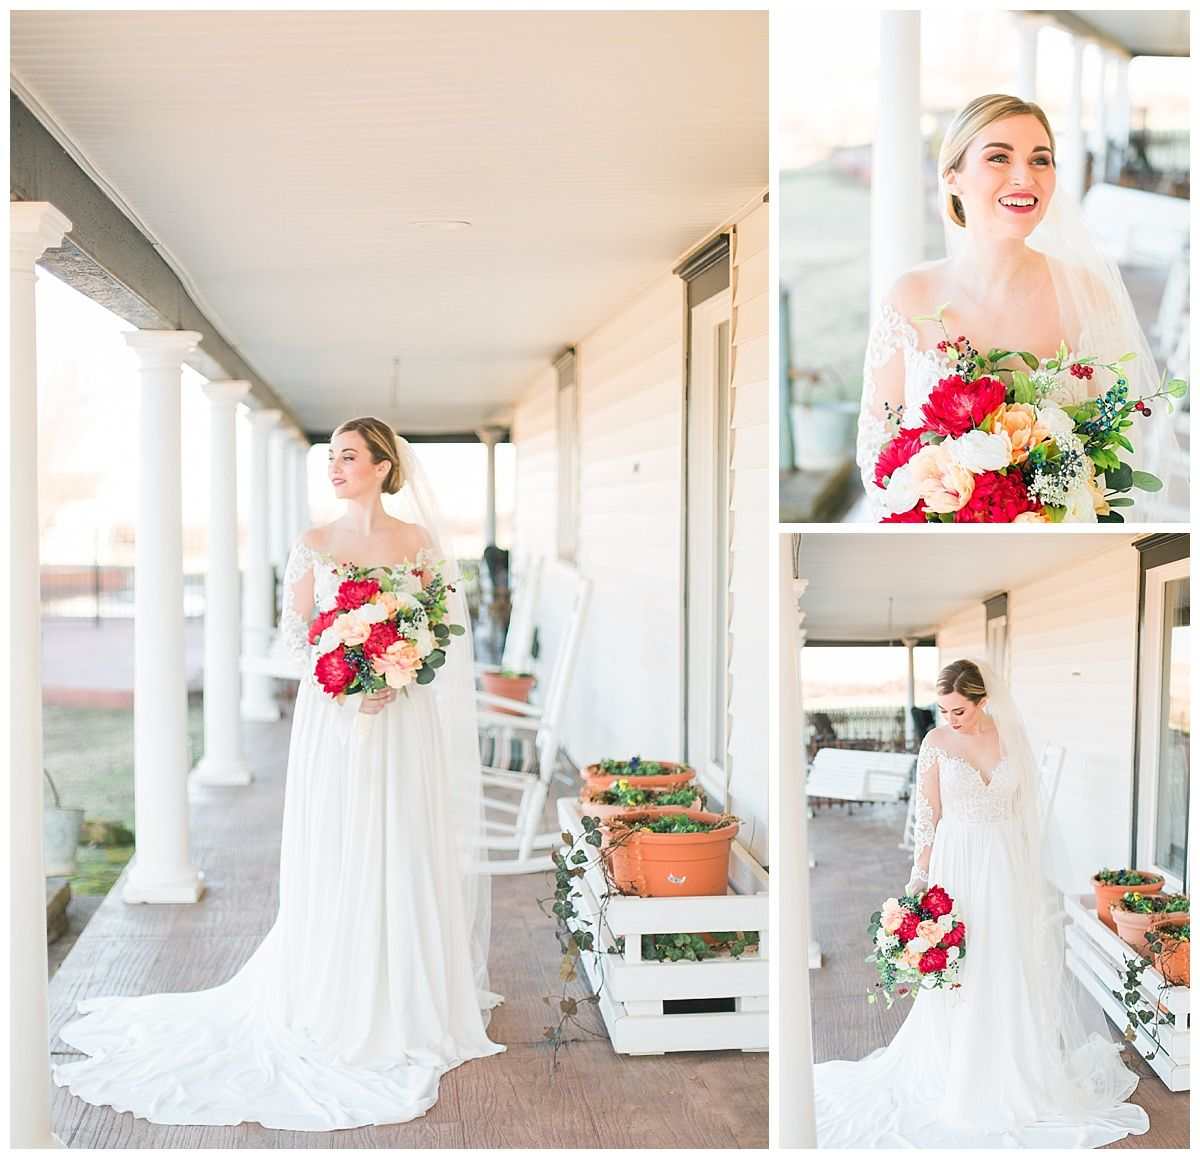 Pin by Dale Carty II on Wedding Photography in 2019